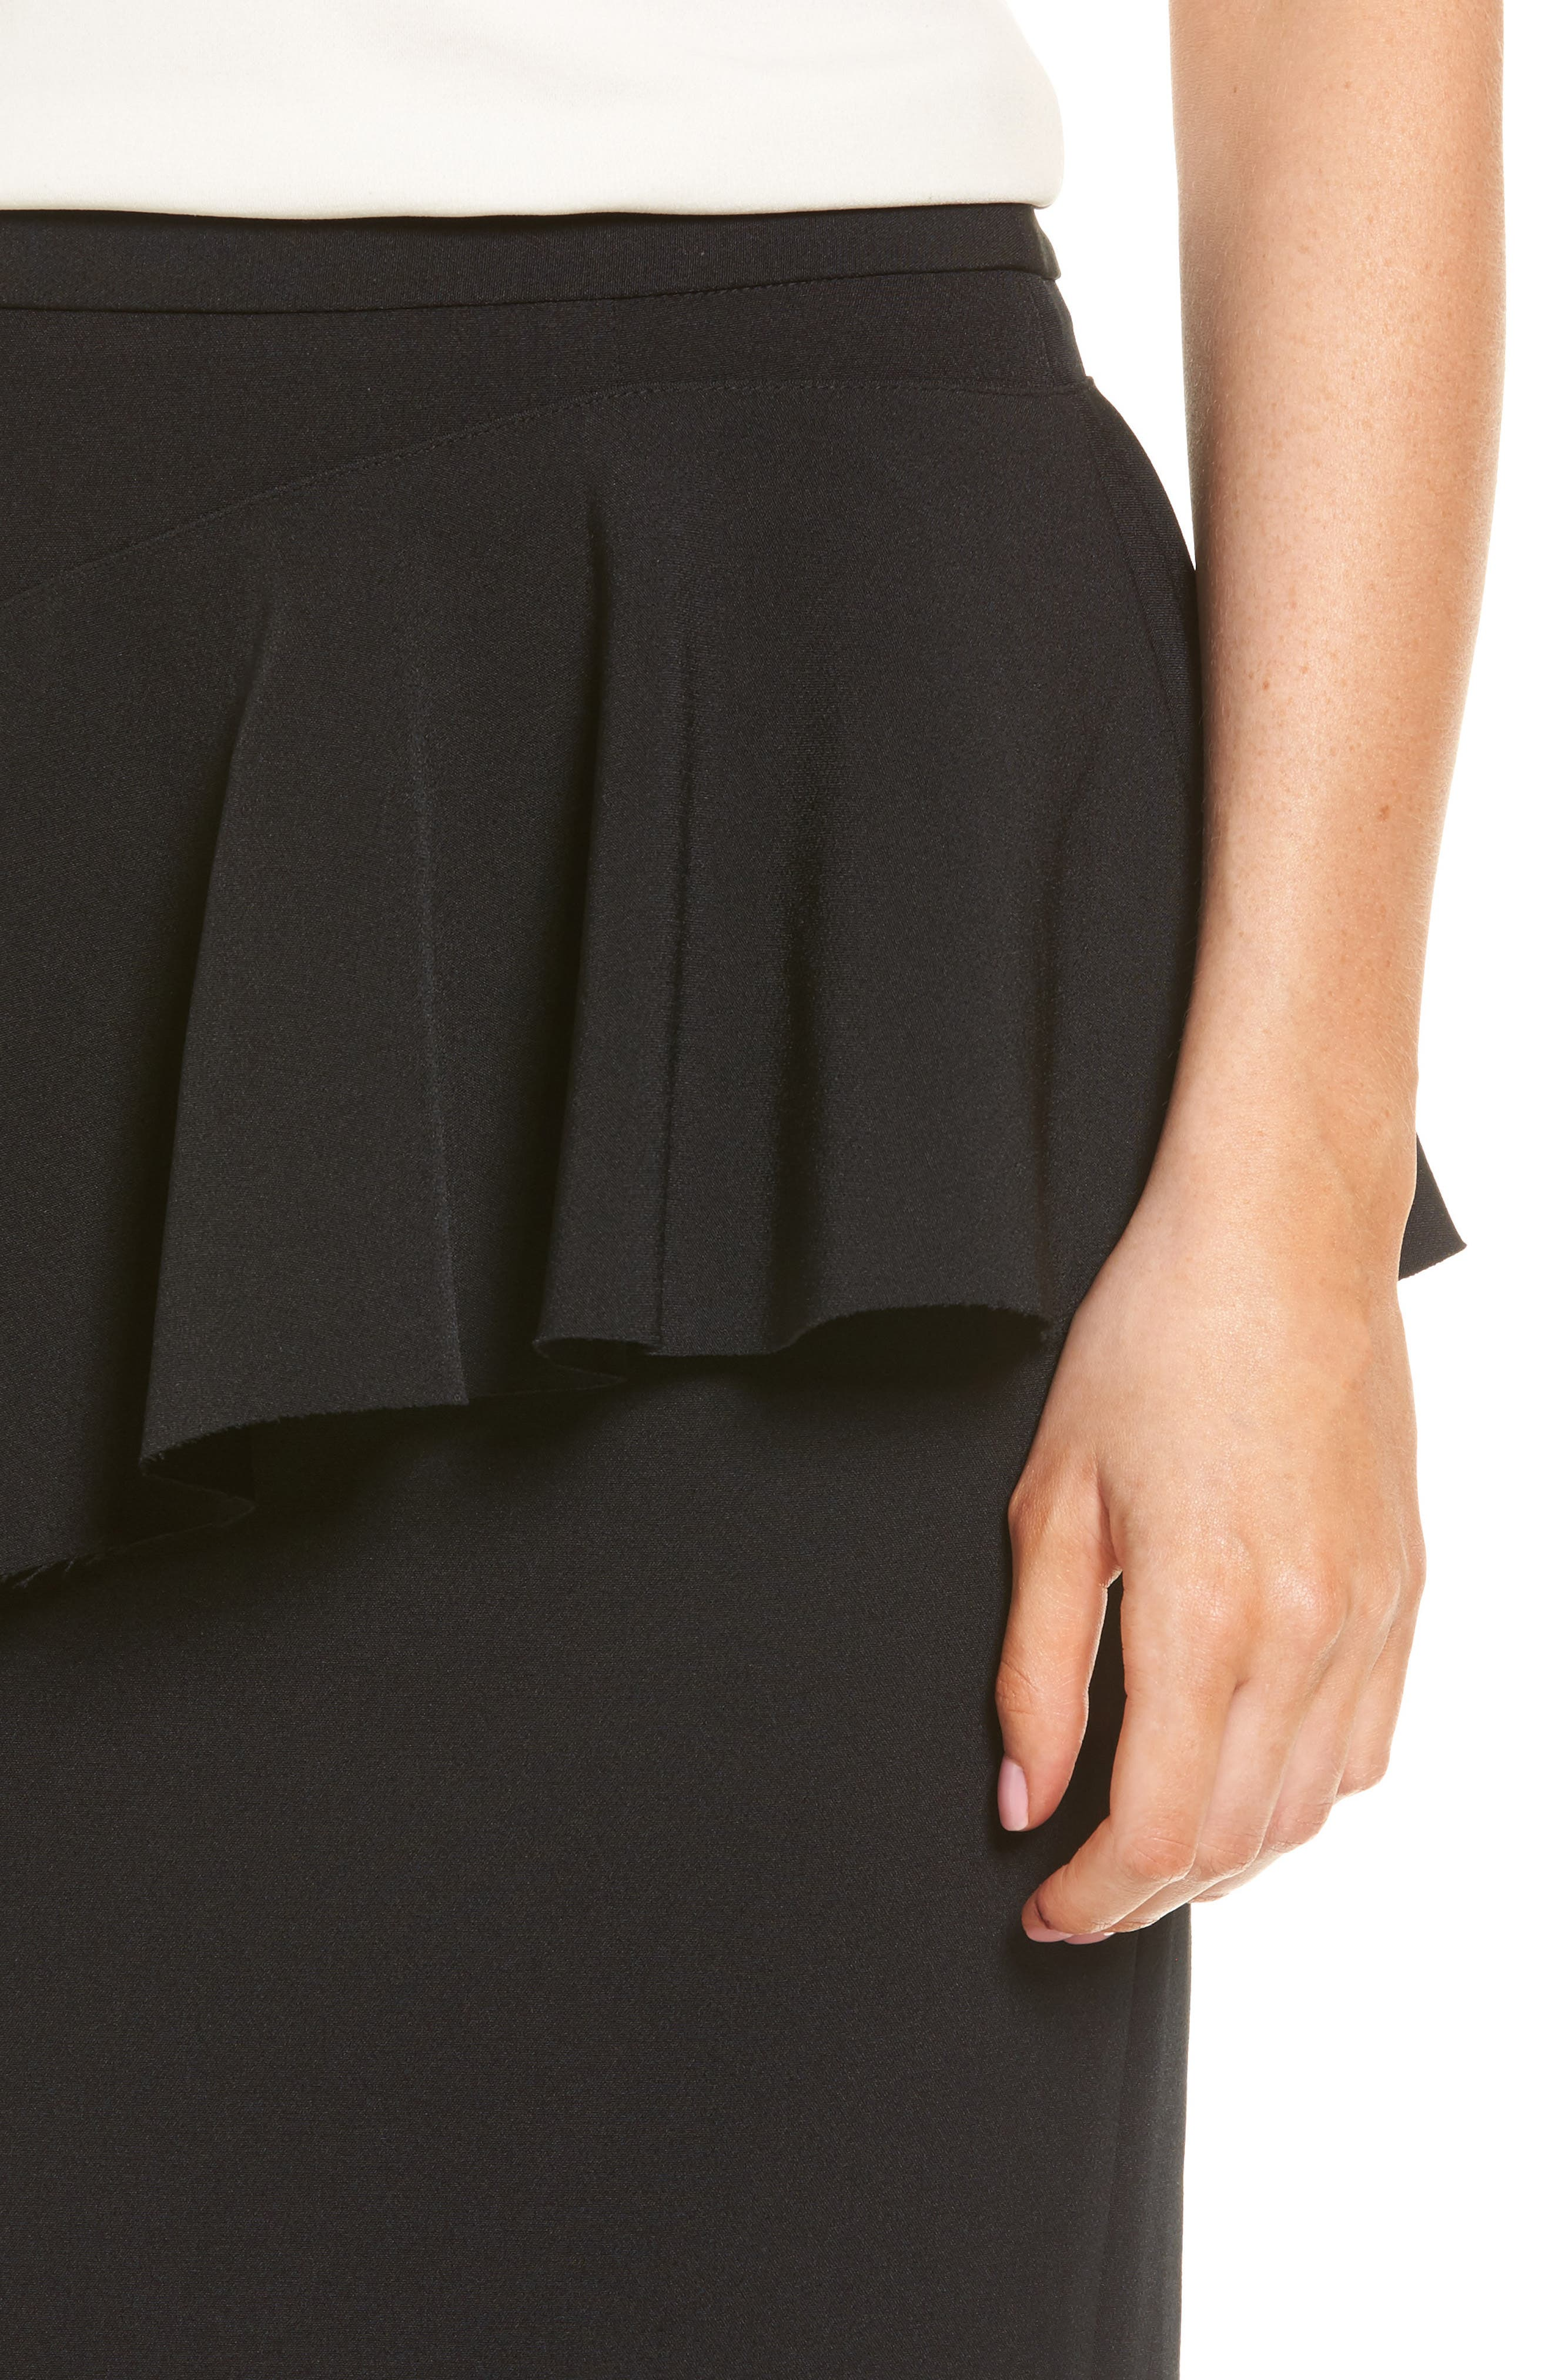 Ruffle Detail Pencil Skirt,                             Alternate thumbnail 4, color,                             Black